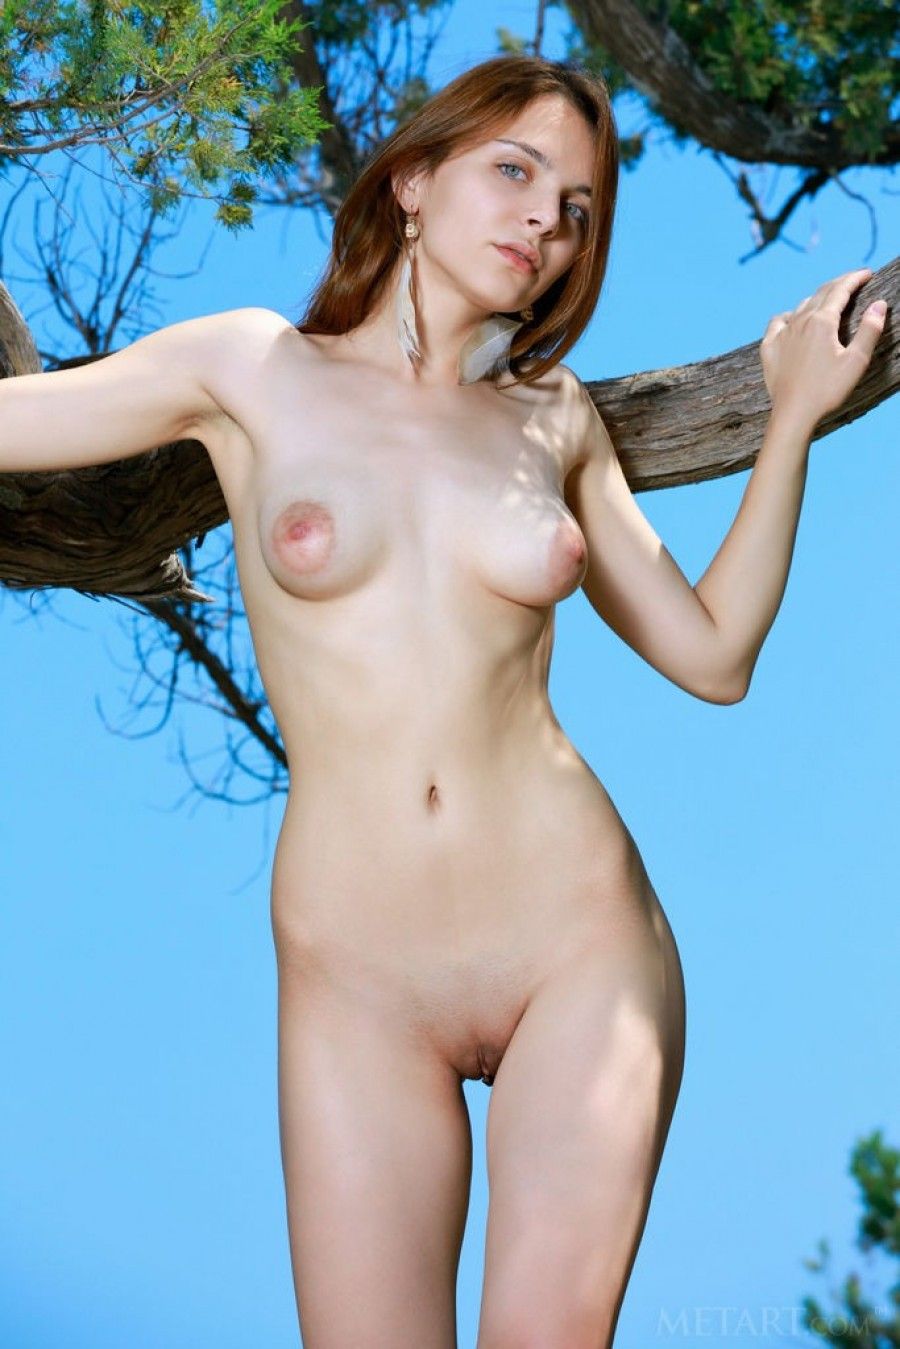 Redhead with puffy nipples outside